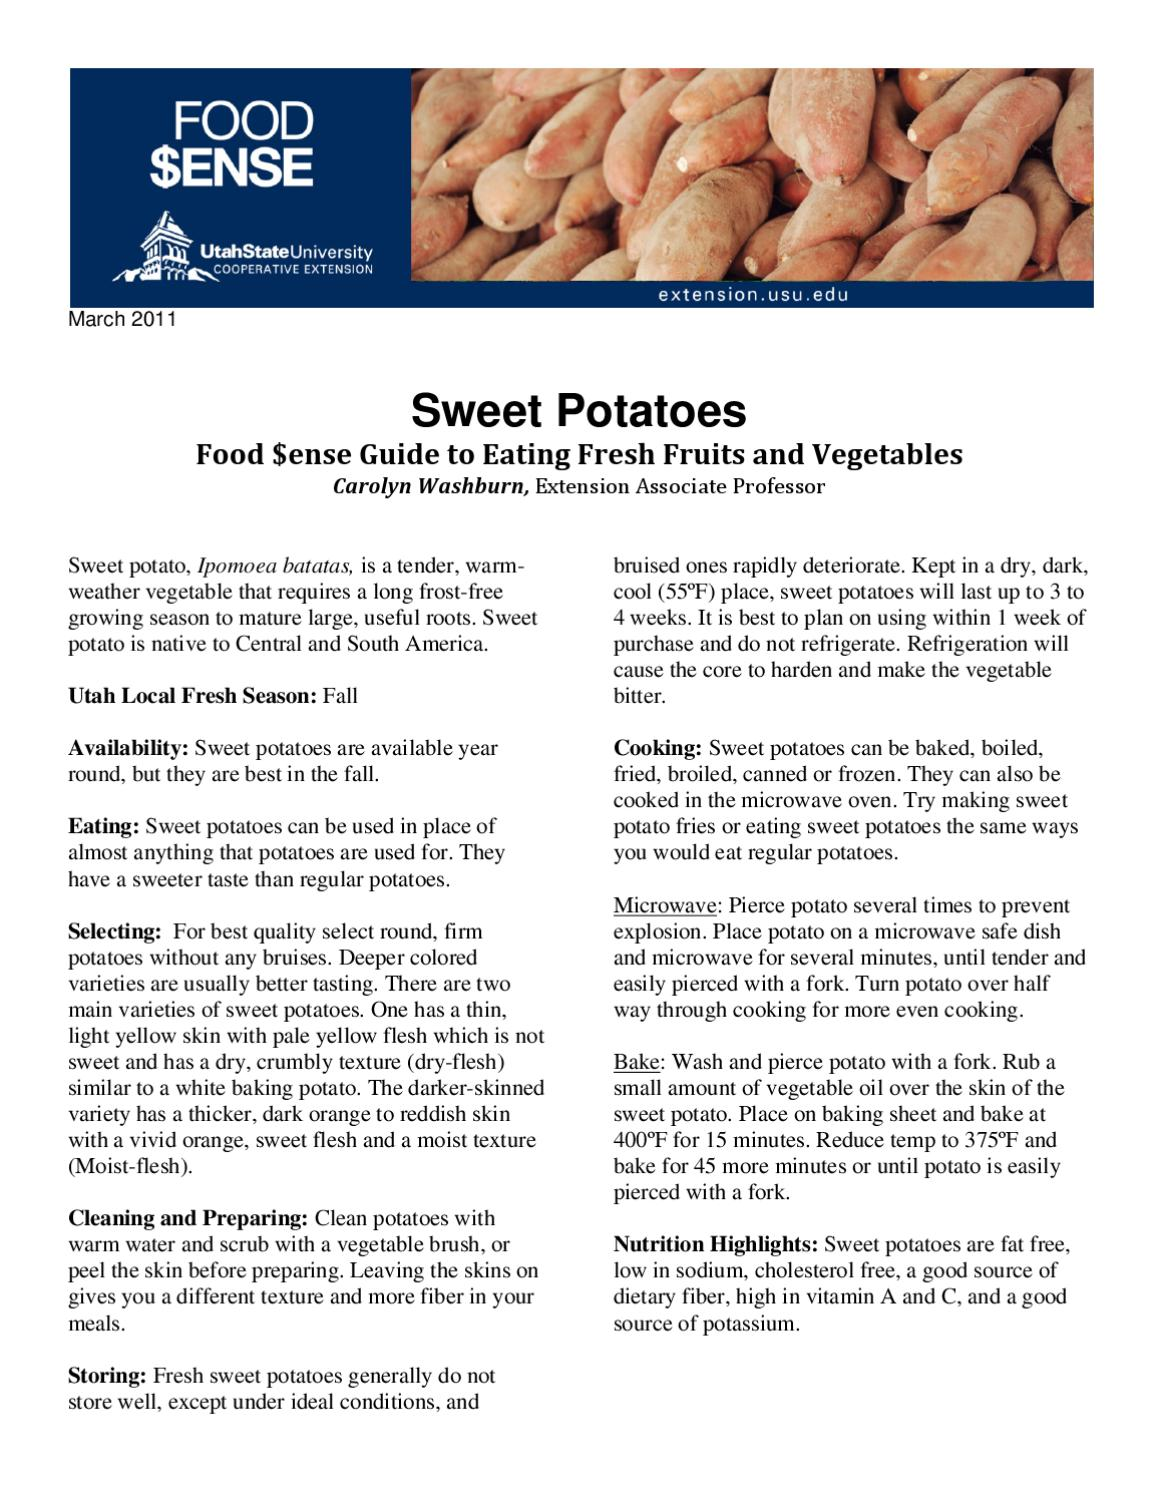 Sweet Potatoes by Utah State University Extension - issuu